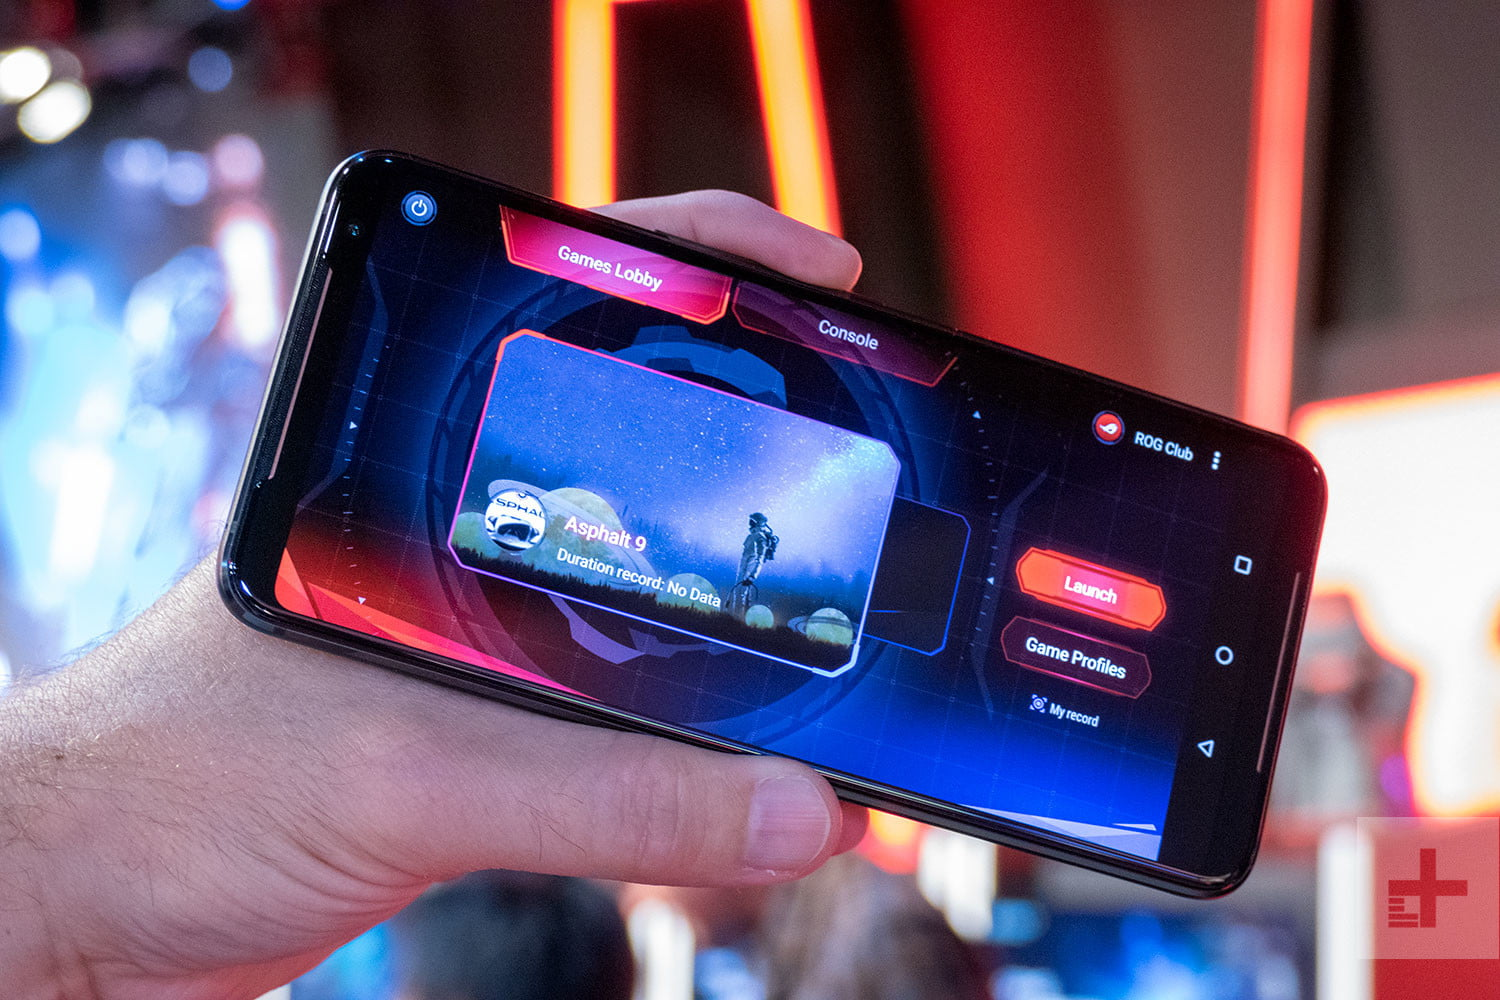 Asus ROG Phone 2 Hands-on Review: A Beastly Gaming Phone